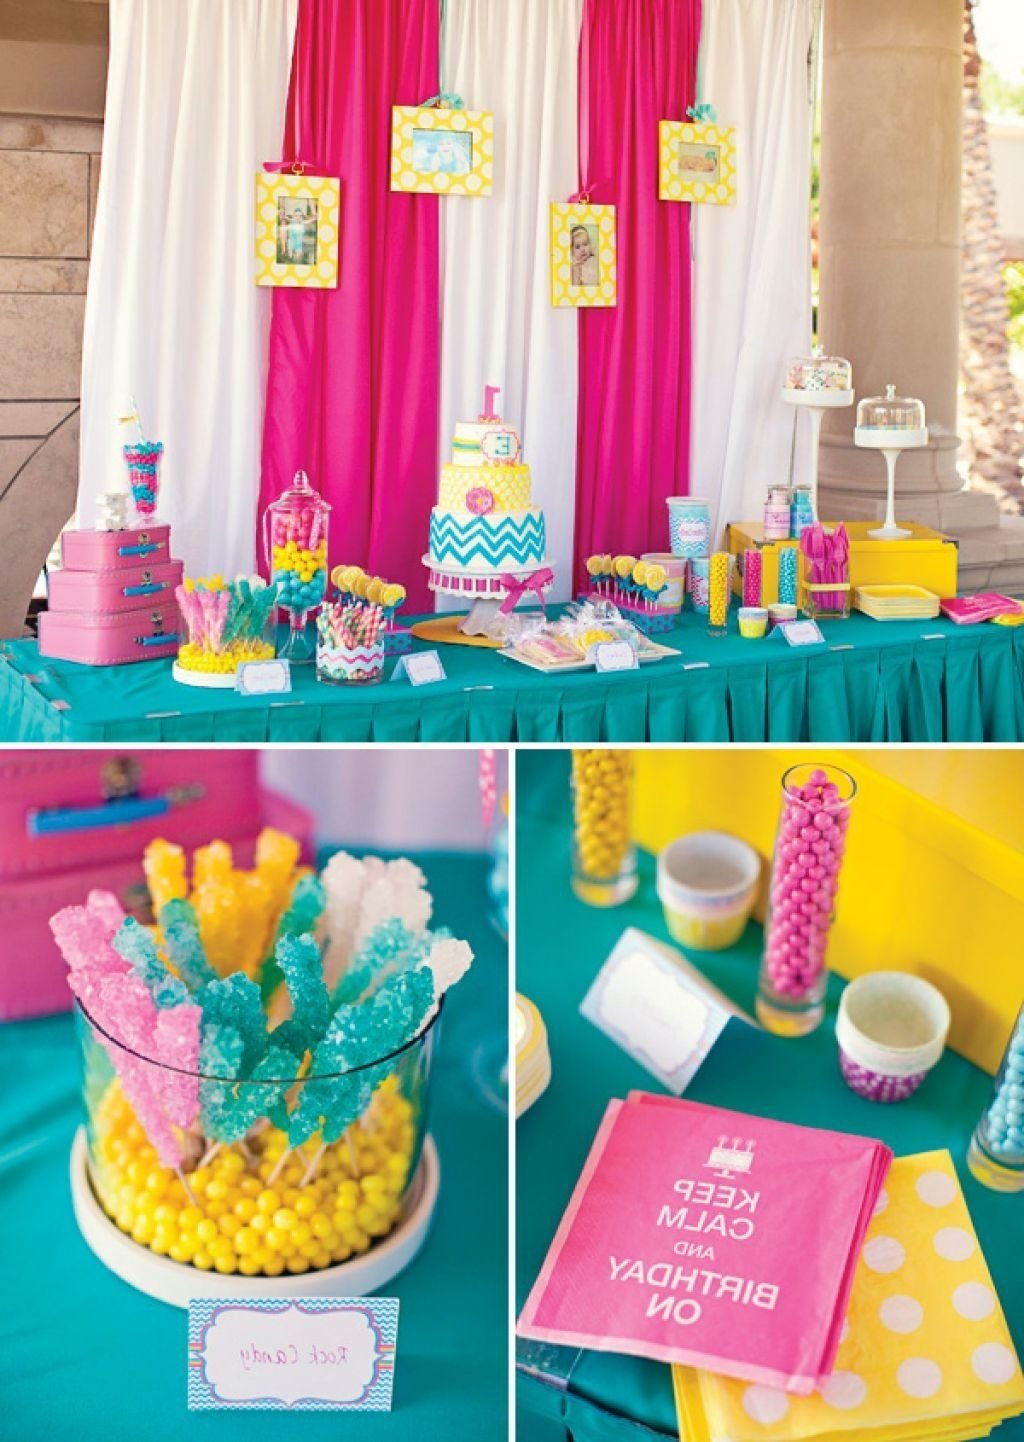 10 Stylish Birthday Party Ideas For 2 Year Old Girl Outdoor Decorations Google Search Madeline